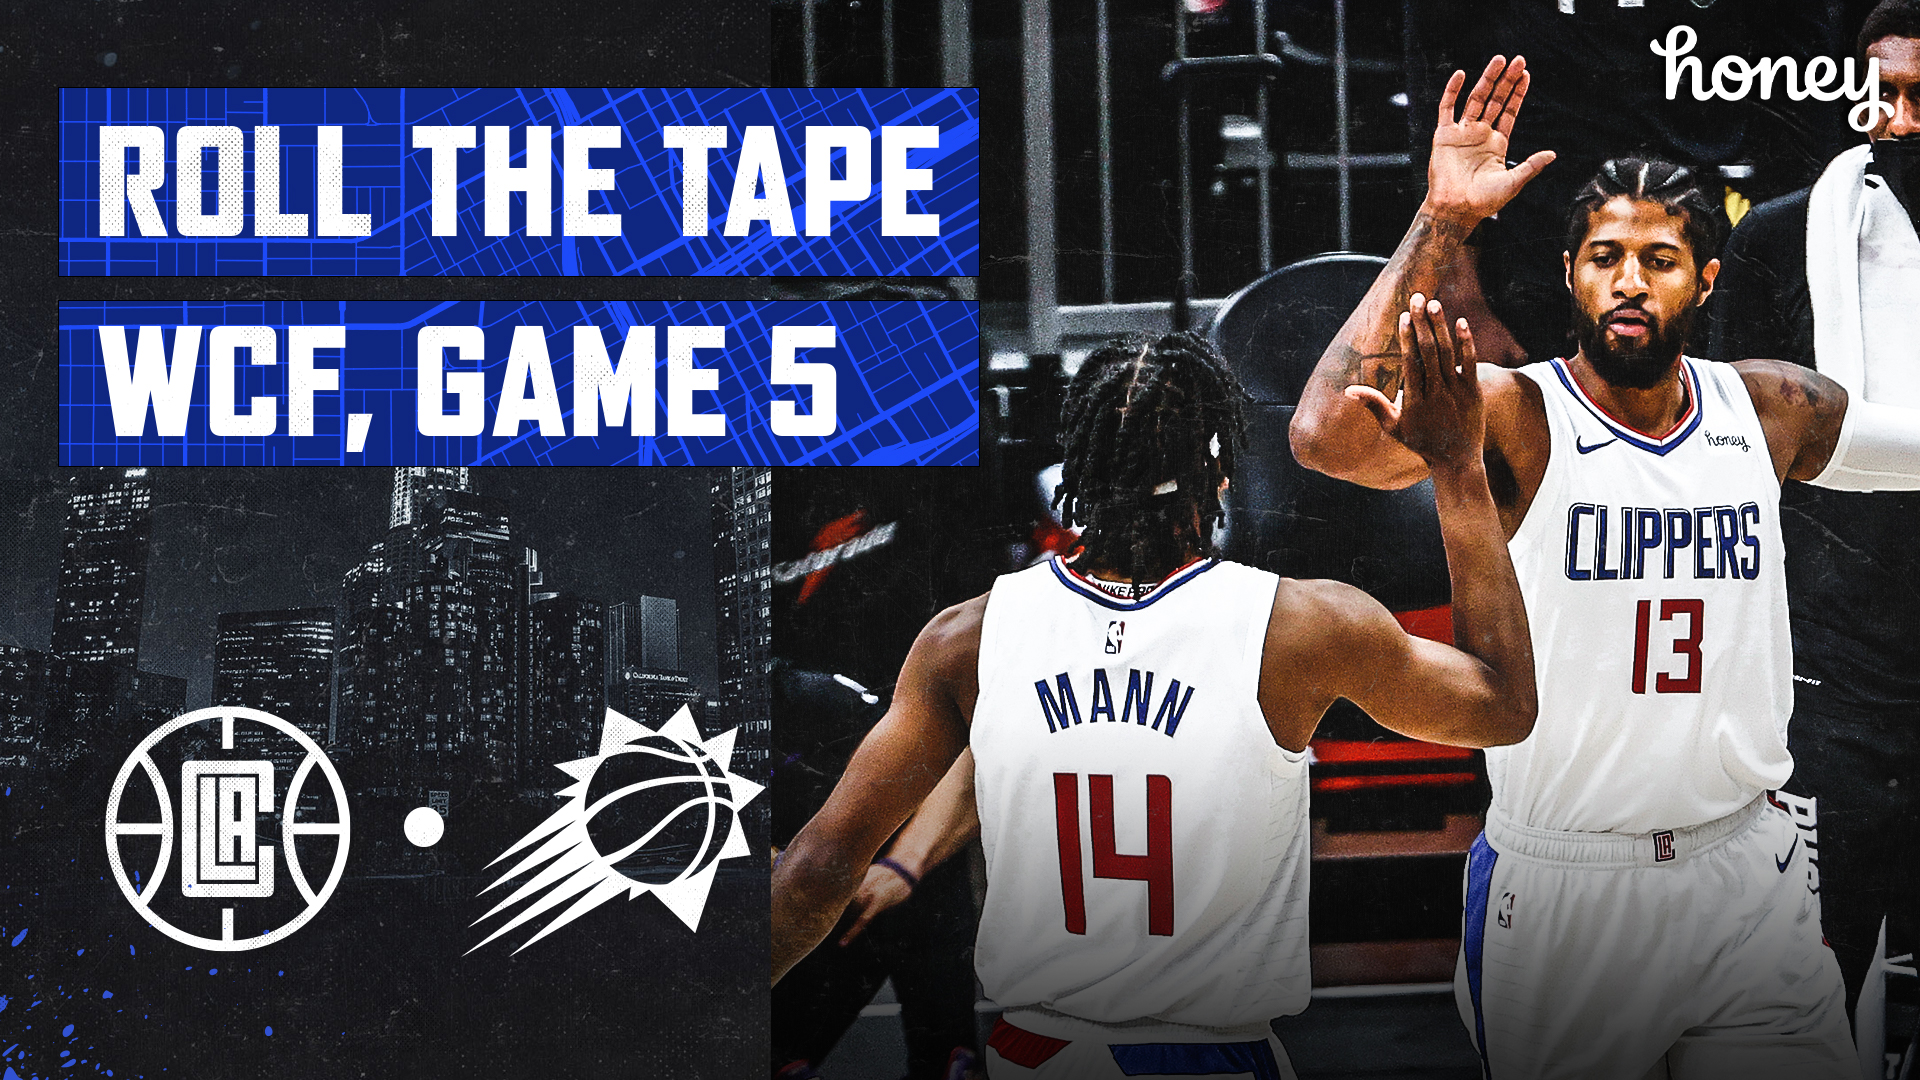 Roll The Tape | Clippers Come Out On Fire, Eclipse the Suns in Game 5 (6.28.21)